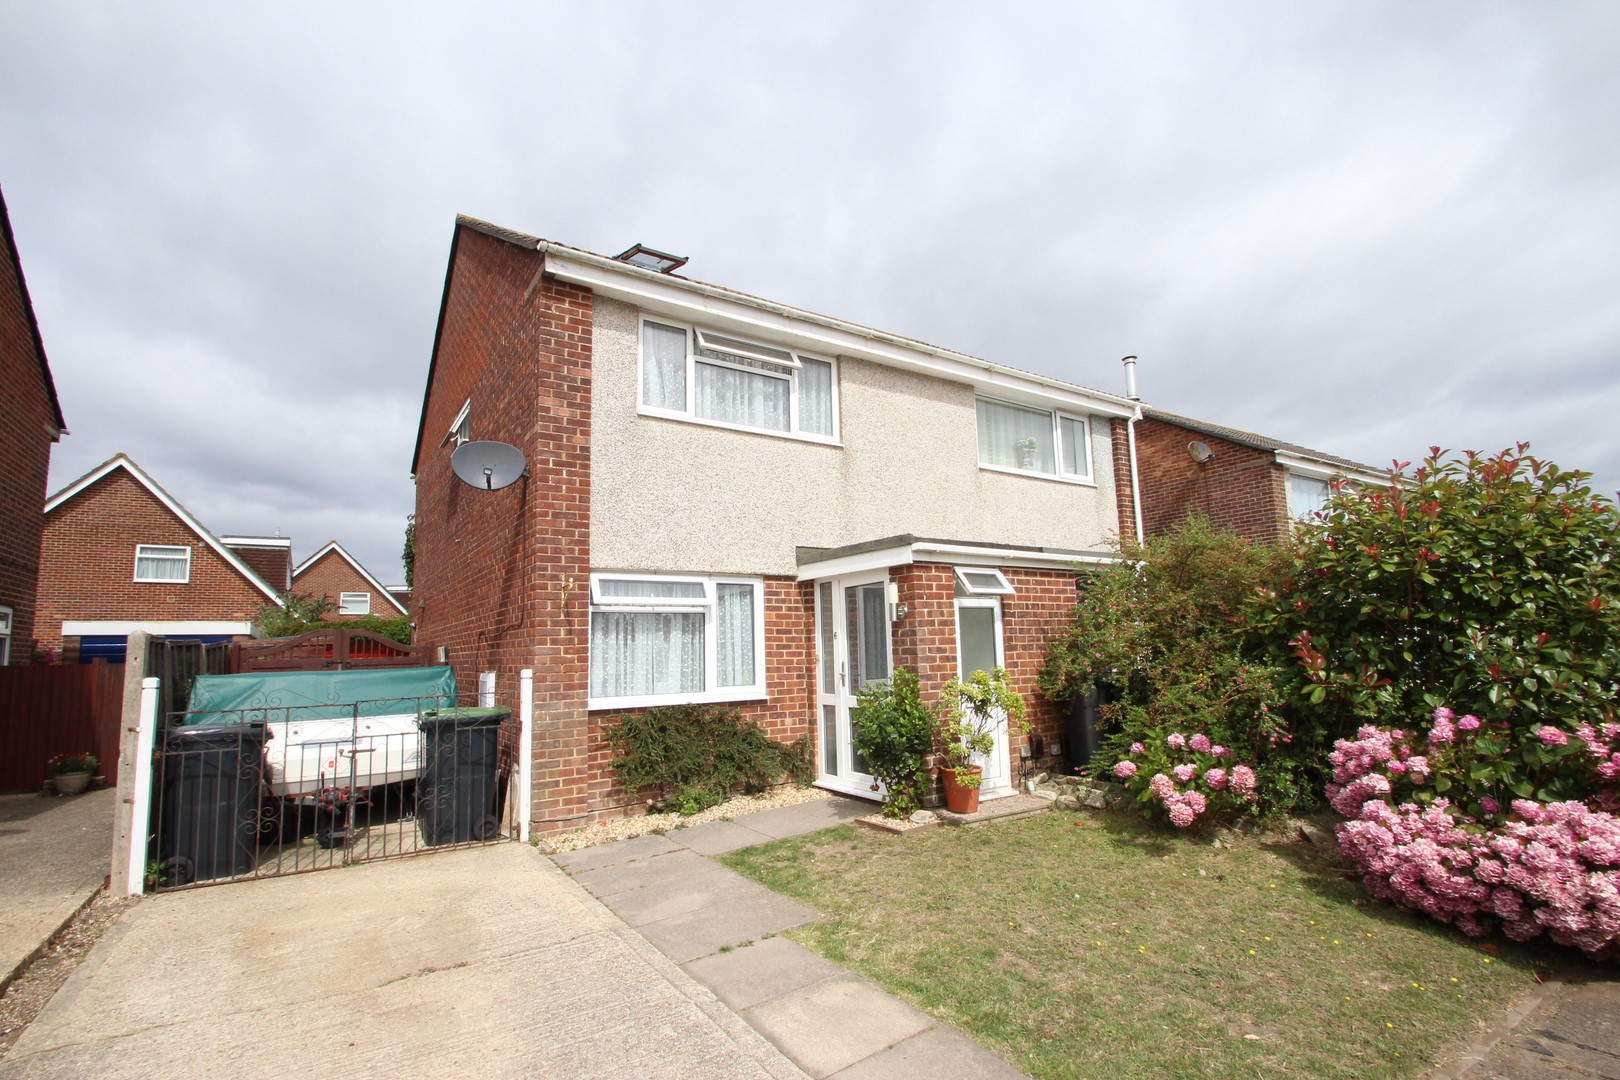 2 Bedroom House in Mudeford